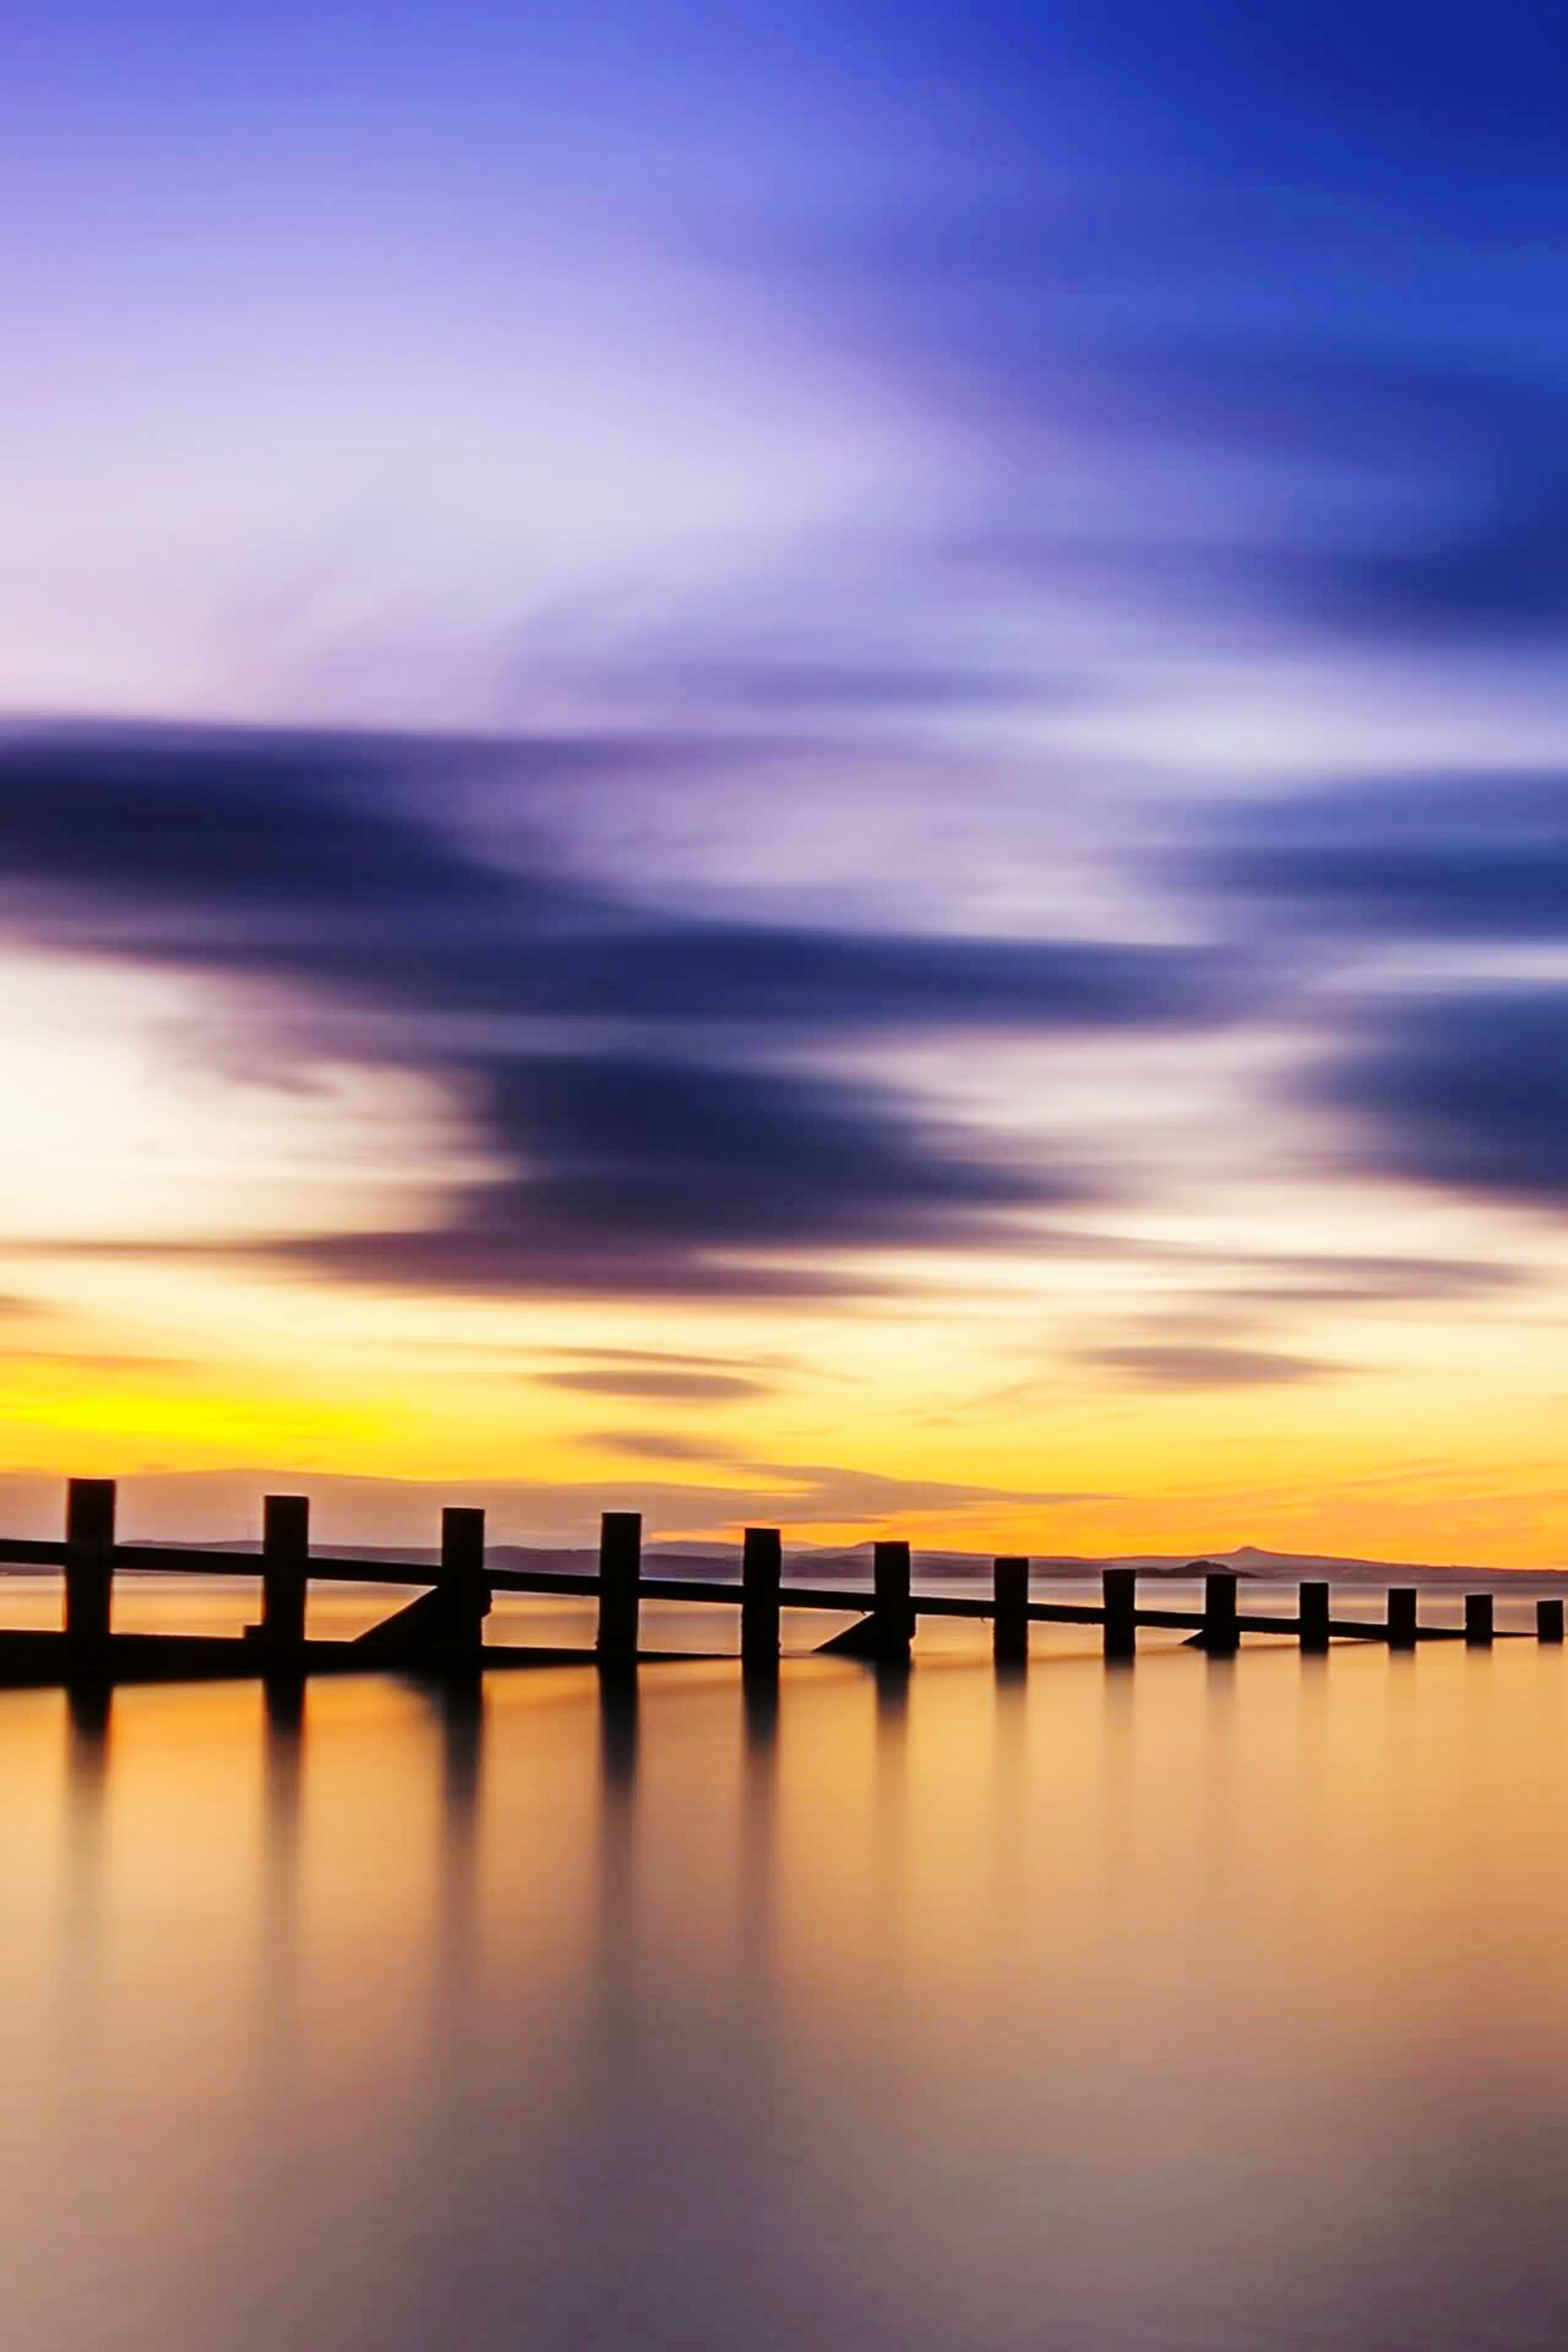 sunset, sea, wooden post, scenics, cloud - sky, sky, reflection, silhouette, nature, tranquility, horizon over water, water, no people, outdoors, beauty in nature, day